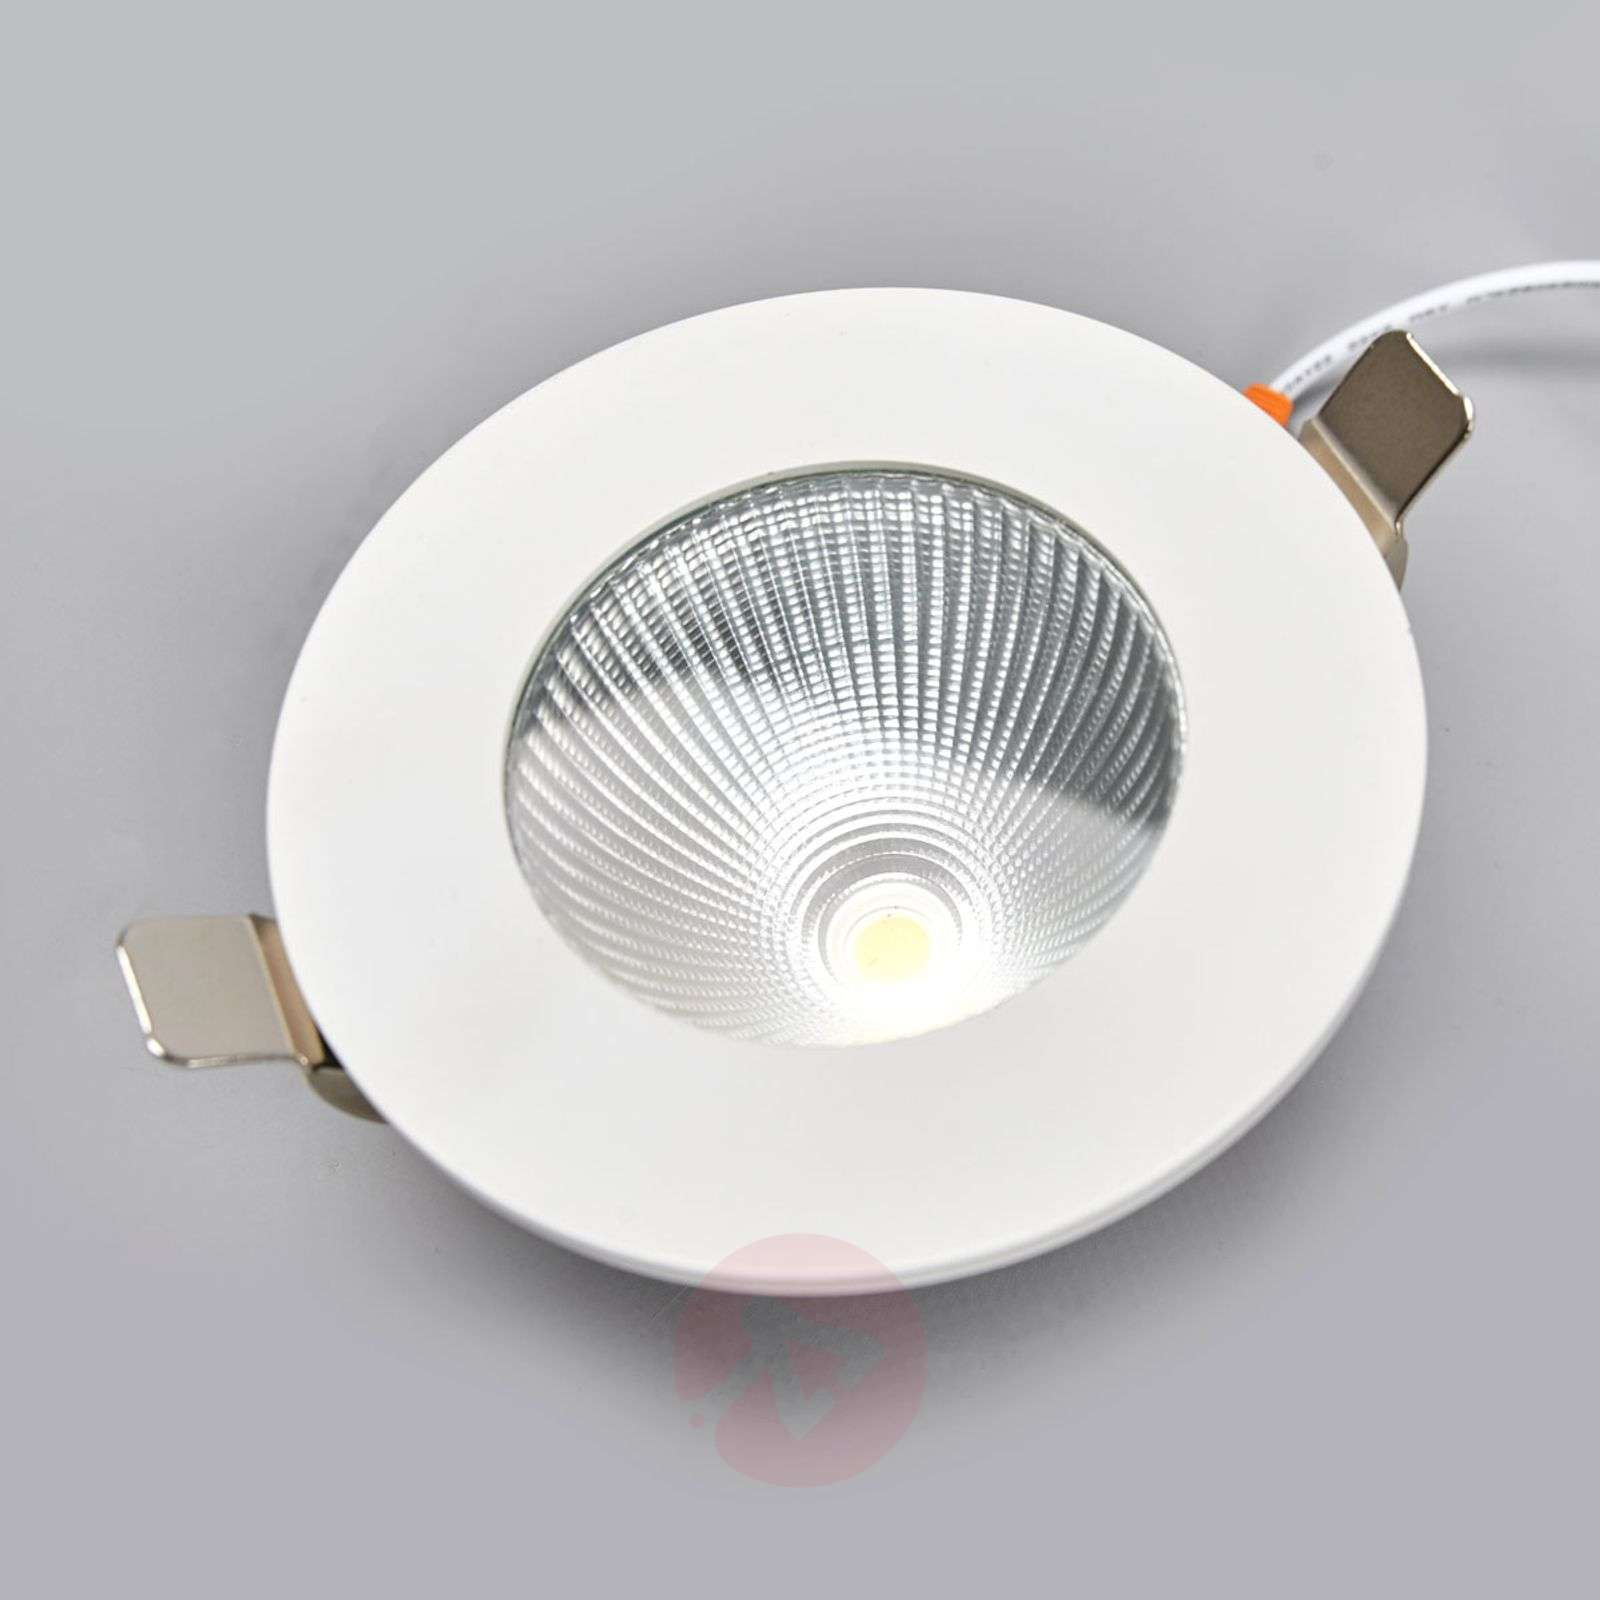 Spot LED encastrable Kamilla blanc, IP65-9966020-04